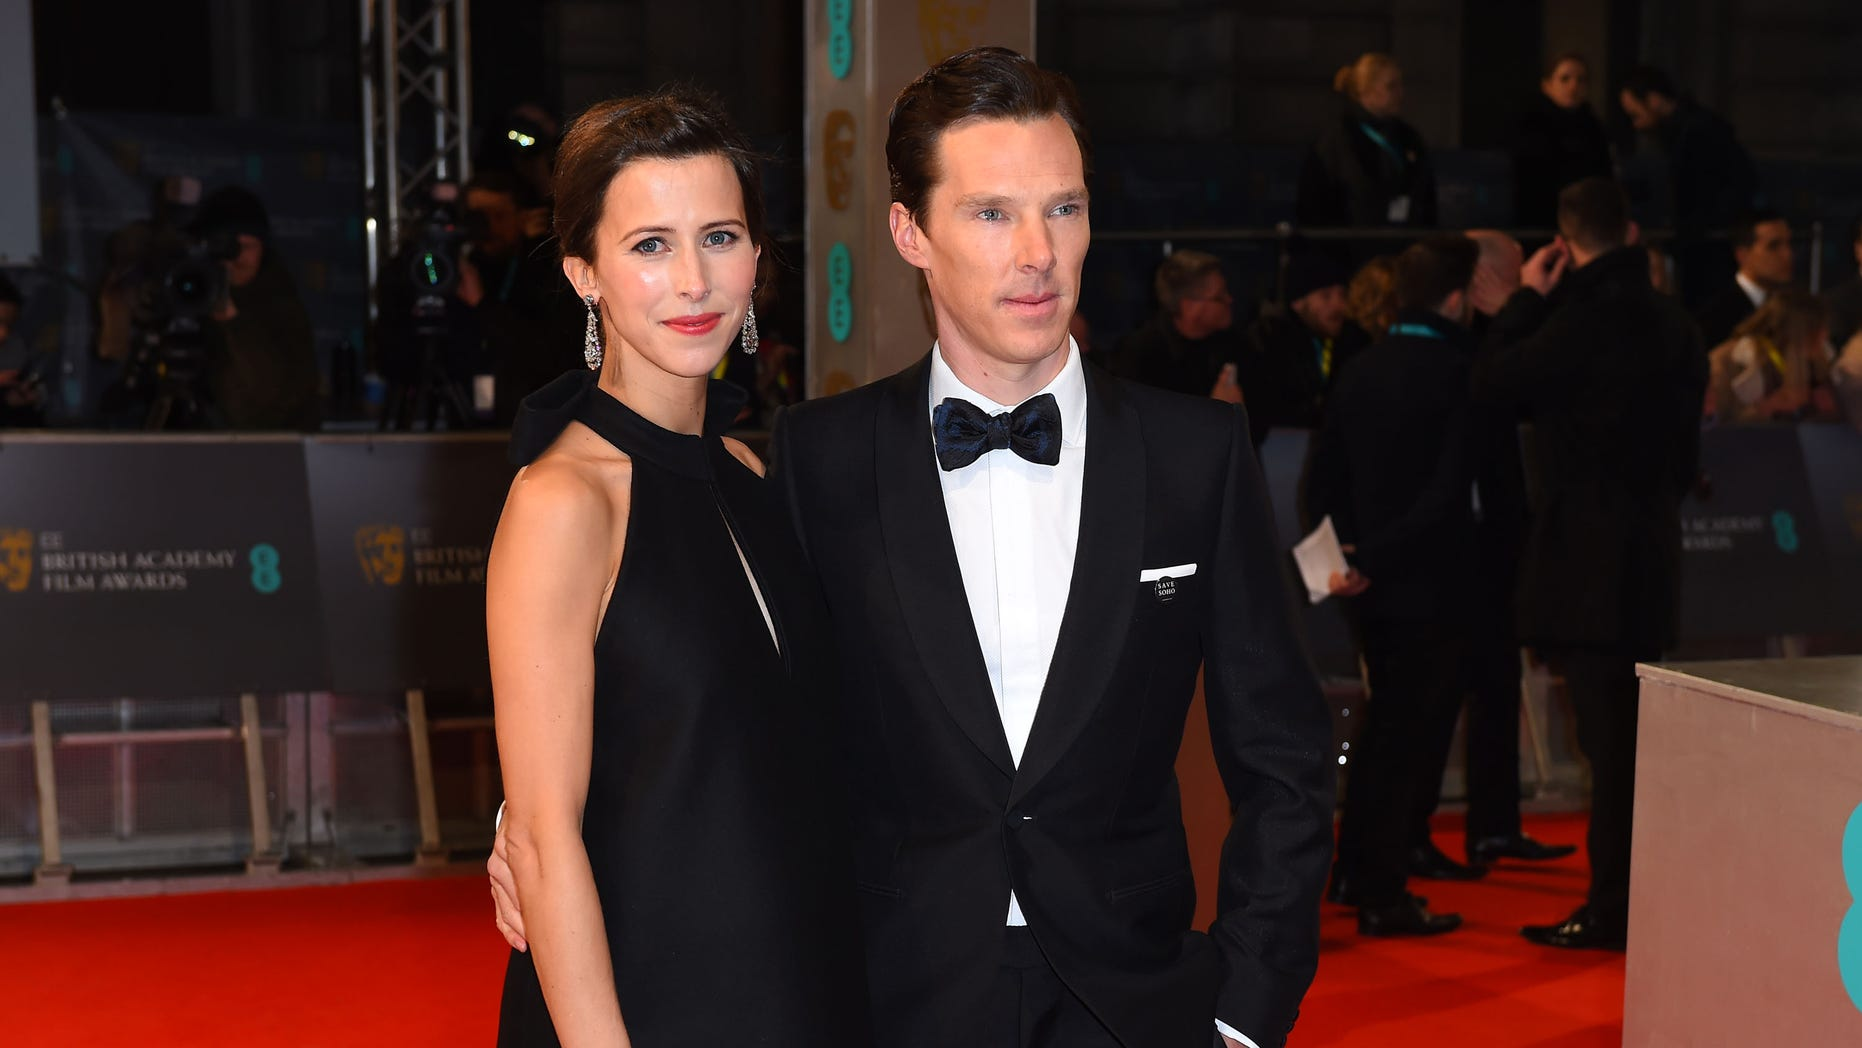 Feb. 8, 2015. Sophie Hunter, left, and Benedict Cumberbatch arrive for the British Academy Film and Television Awards 2015 at the Royal Opera House in London.